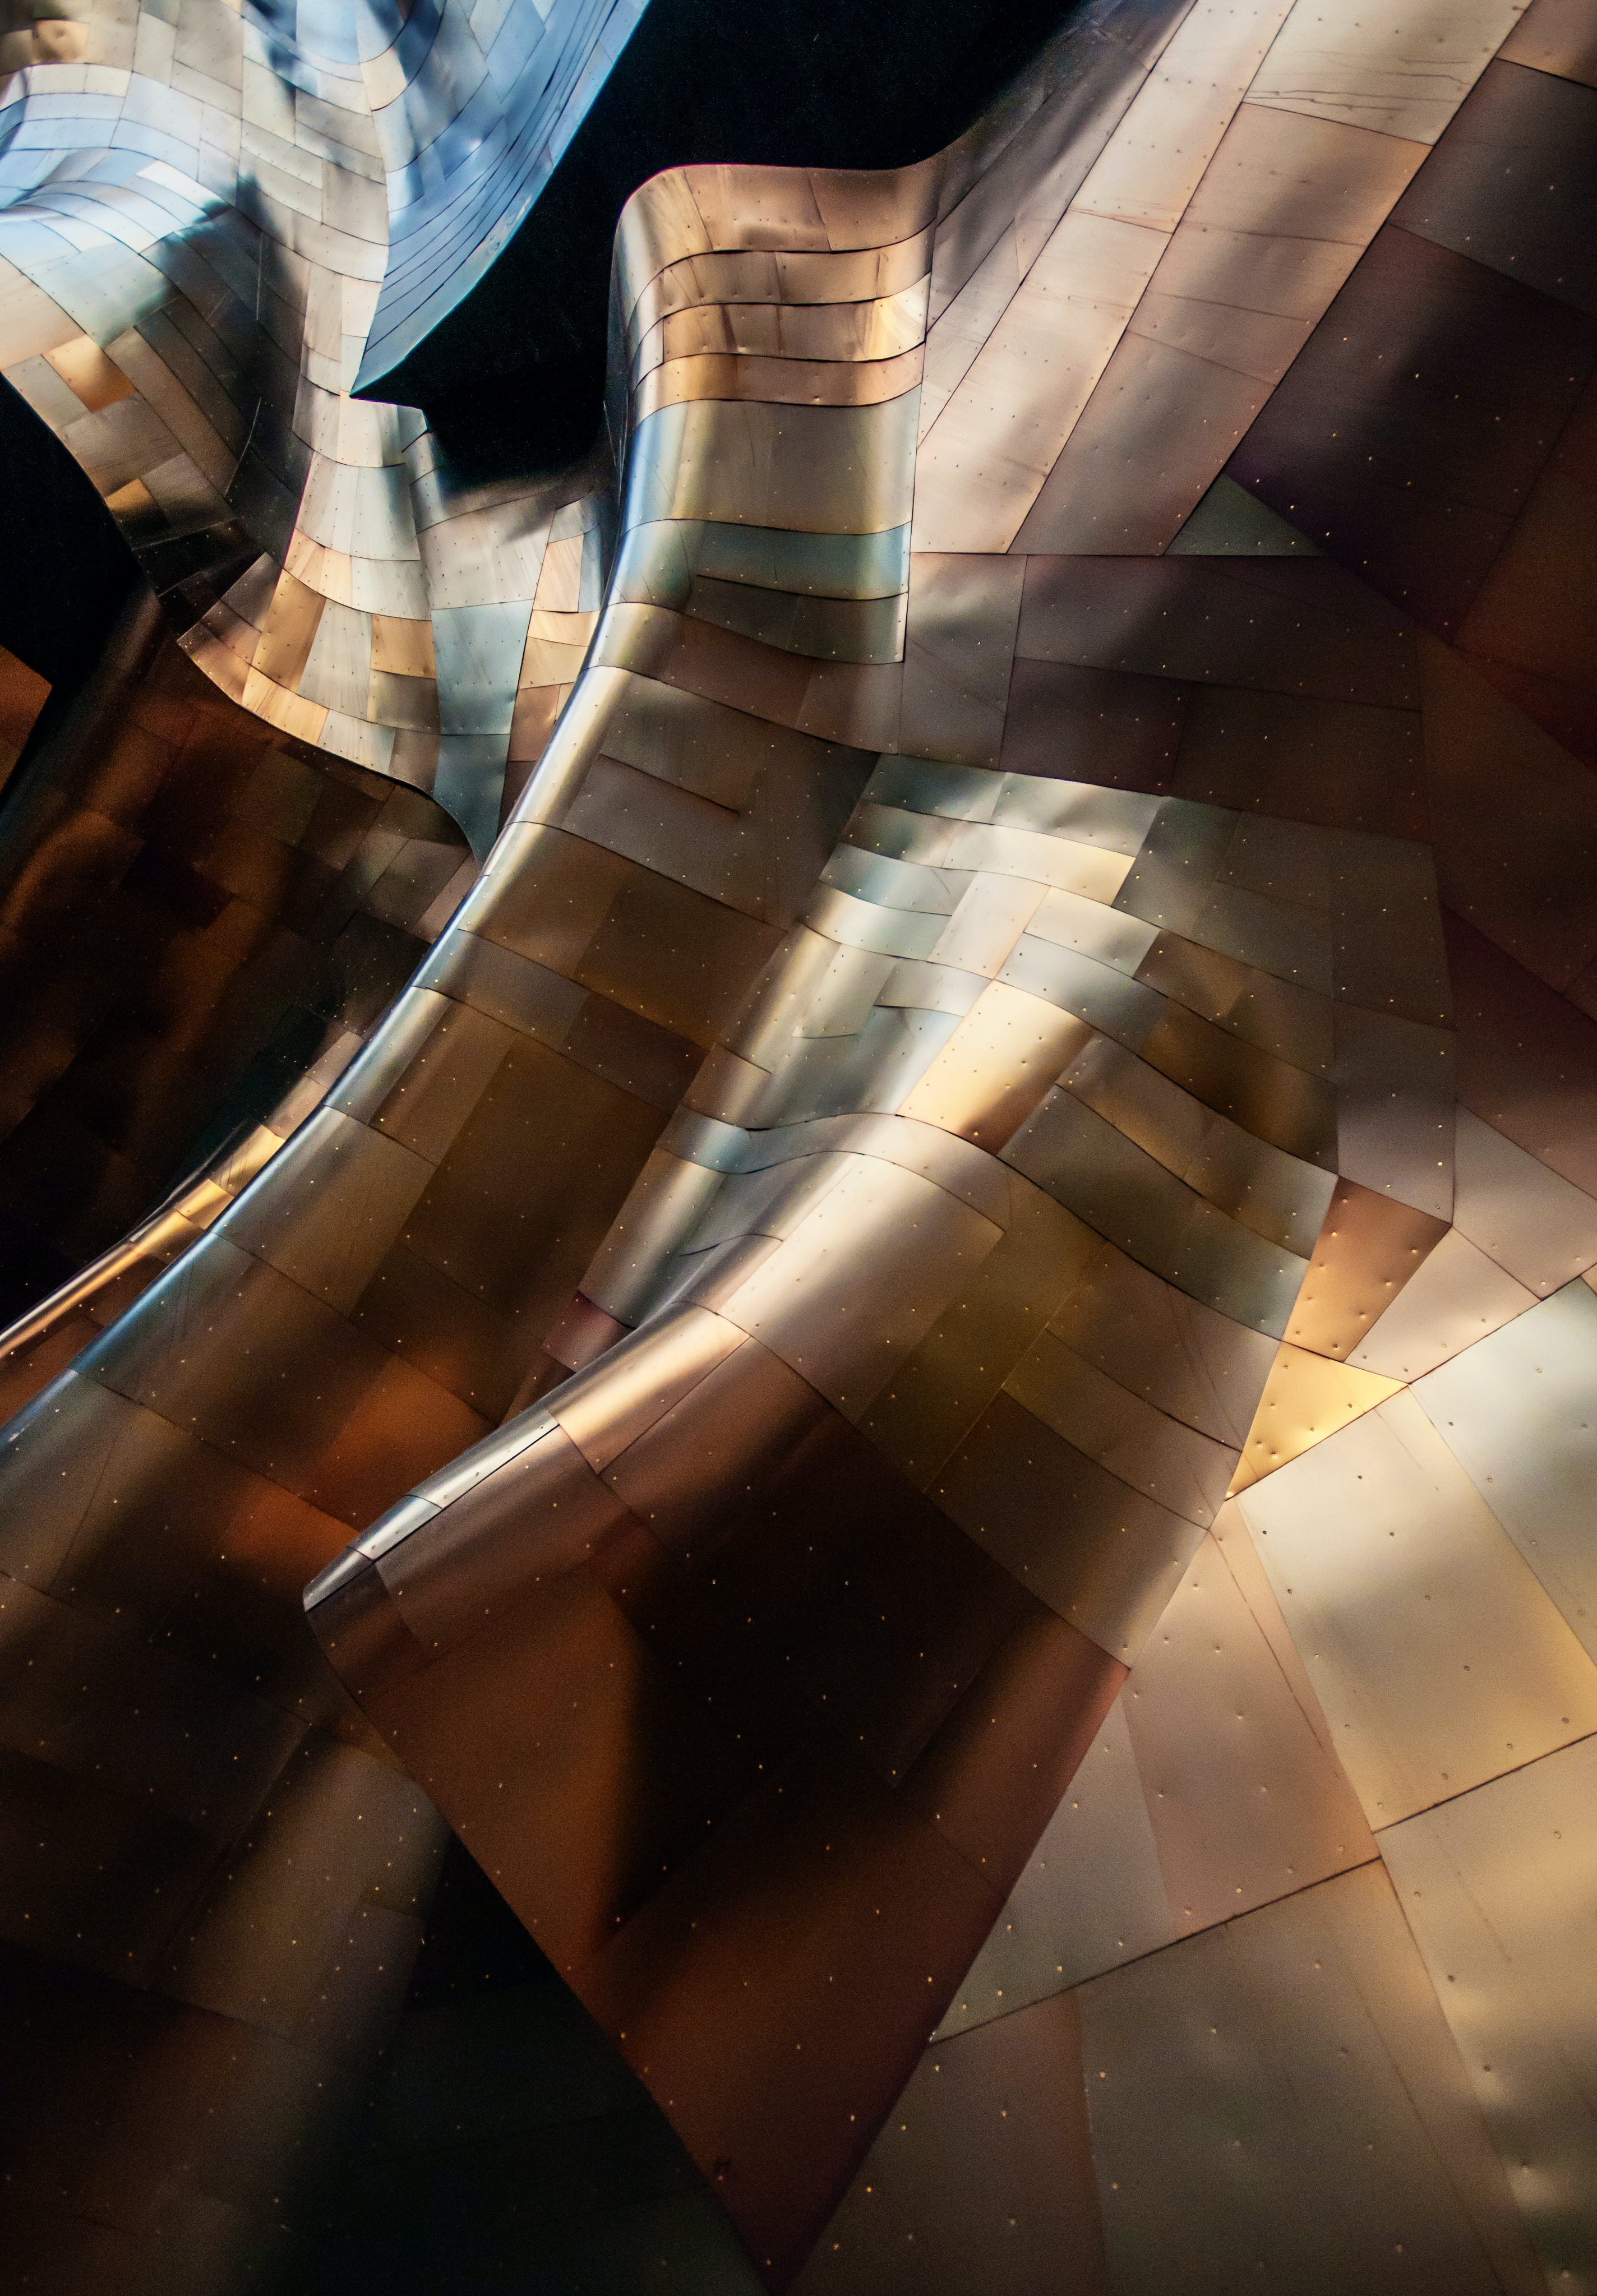 Free stock photo of light, pattern, abstract, architecture